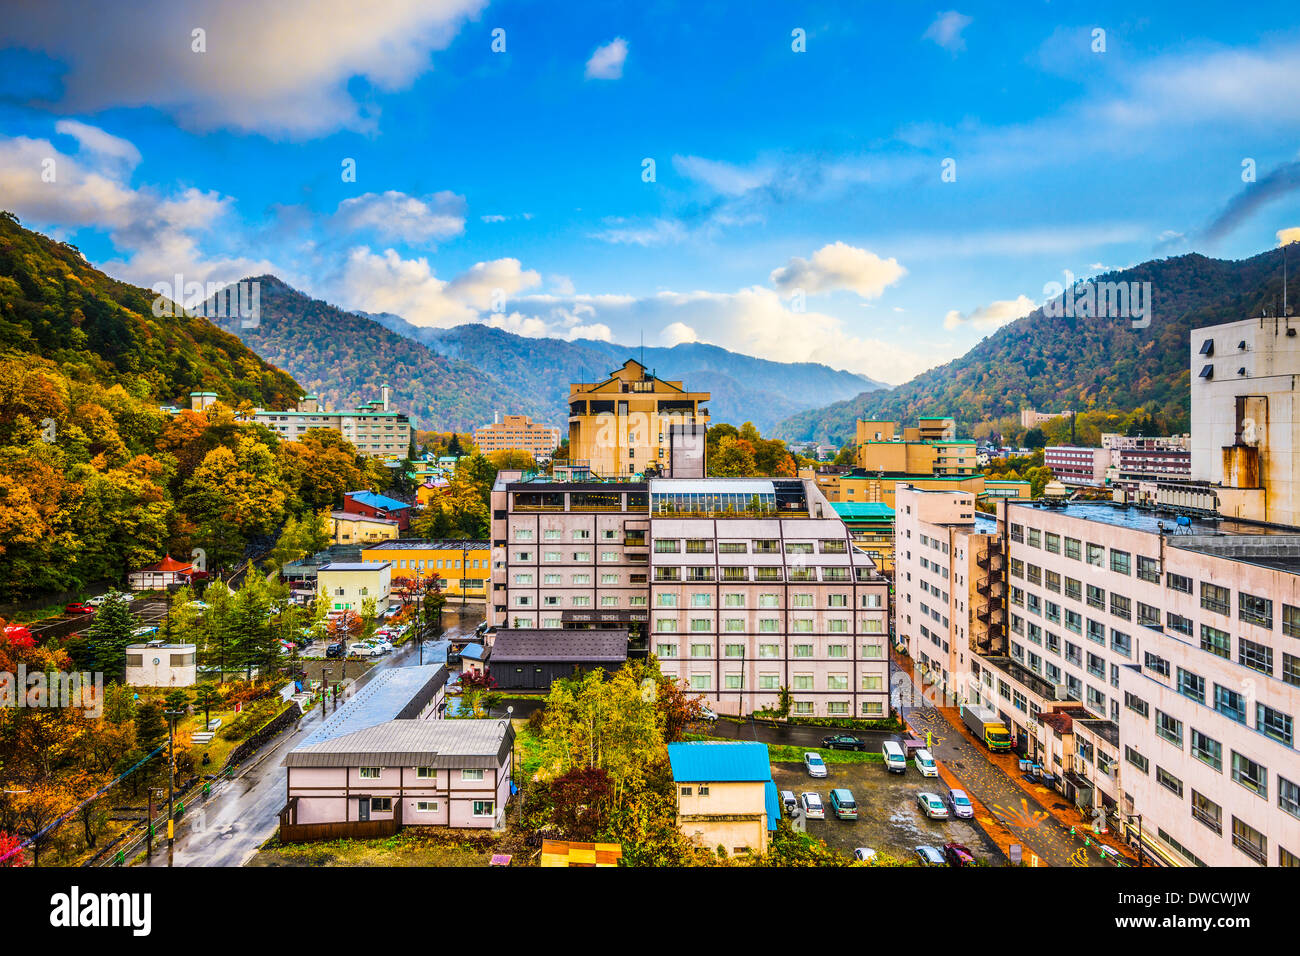 Jozankei, Japan hot spring resort town during the autumn season. - Stock Image